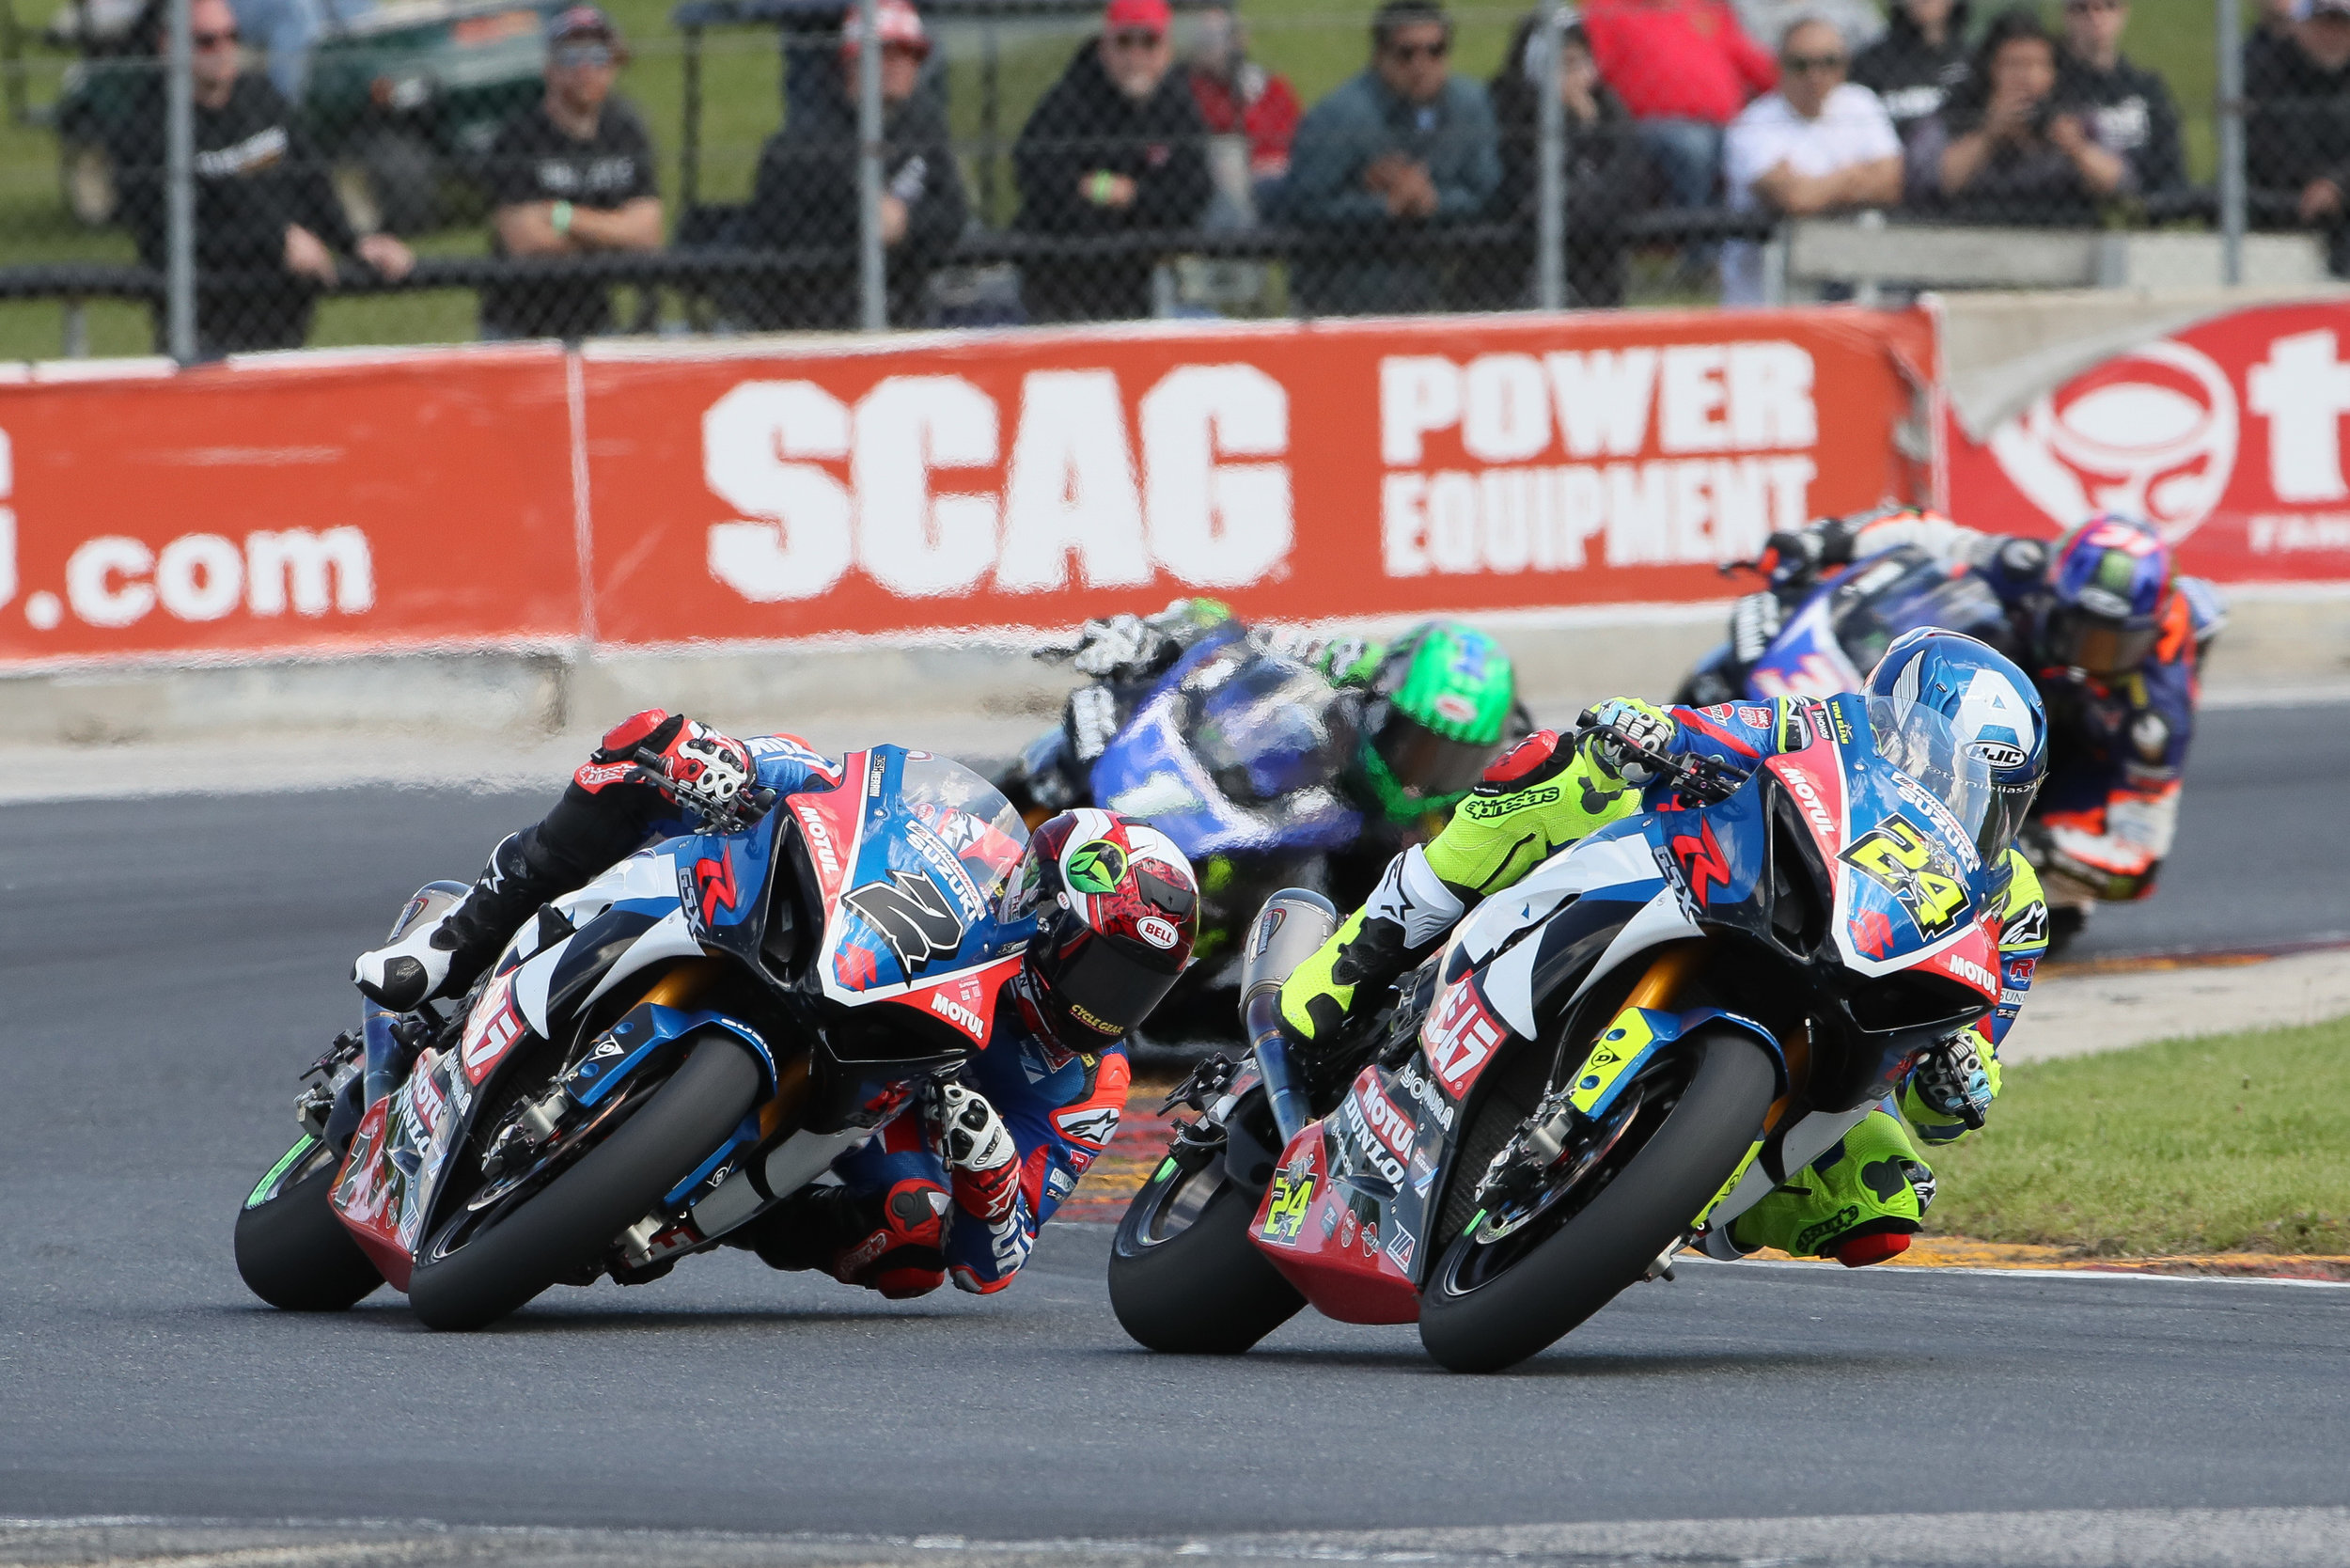 Yoshimura Suzuki Factory Racing's Toni Elias (No. 24) and Josh Herrin (No. 2) battled this close nearly the entire way on Saturday at Road America. Elias took the victory, his 28th in MotoAmerica Superbike, putting him in the top-five on the all-time wins list. (Brian J. Nelson photo)